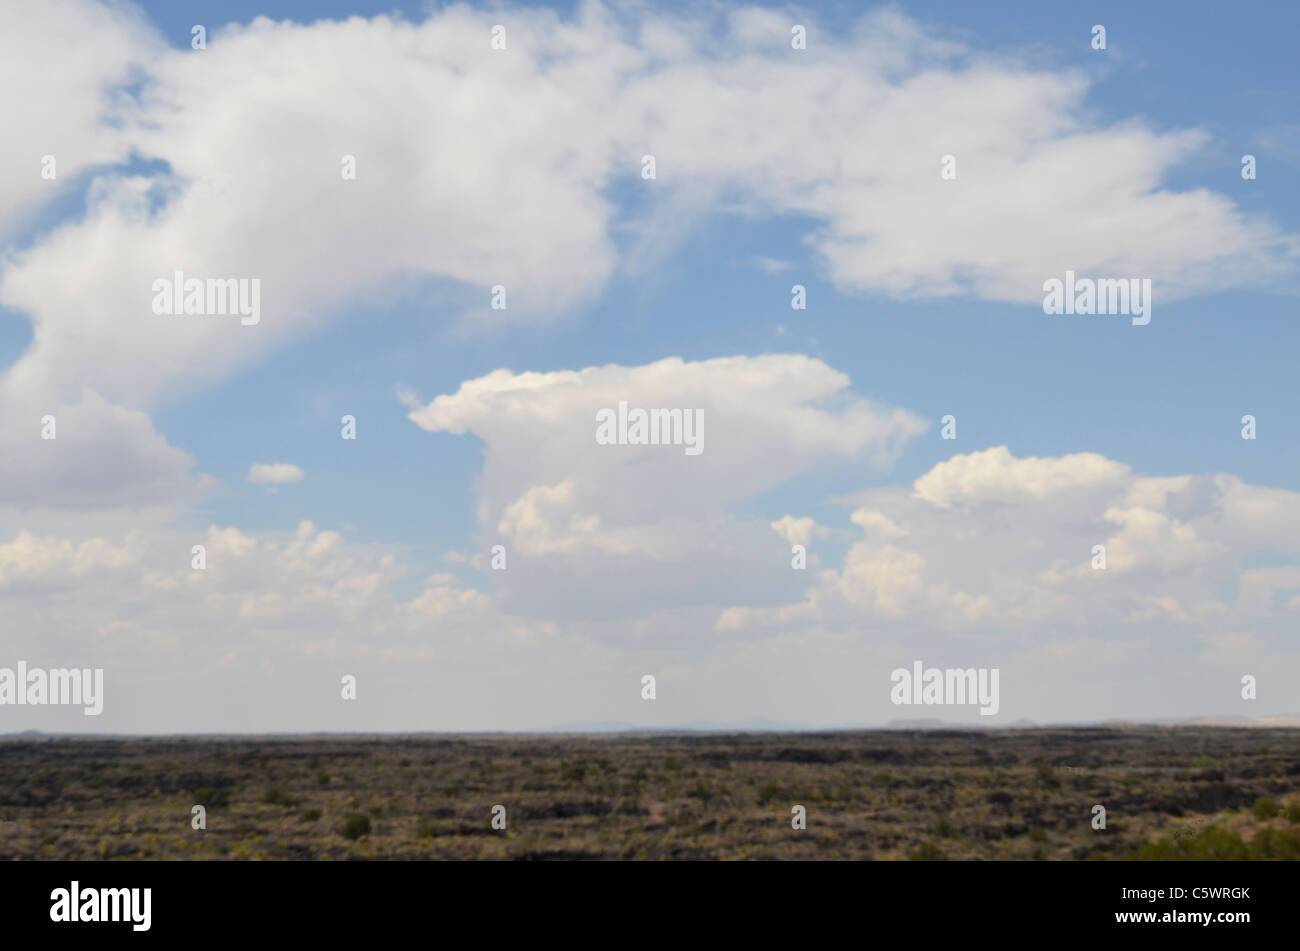 White, fluffy  clouds with a plain ground base - Stock Image